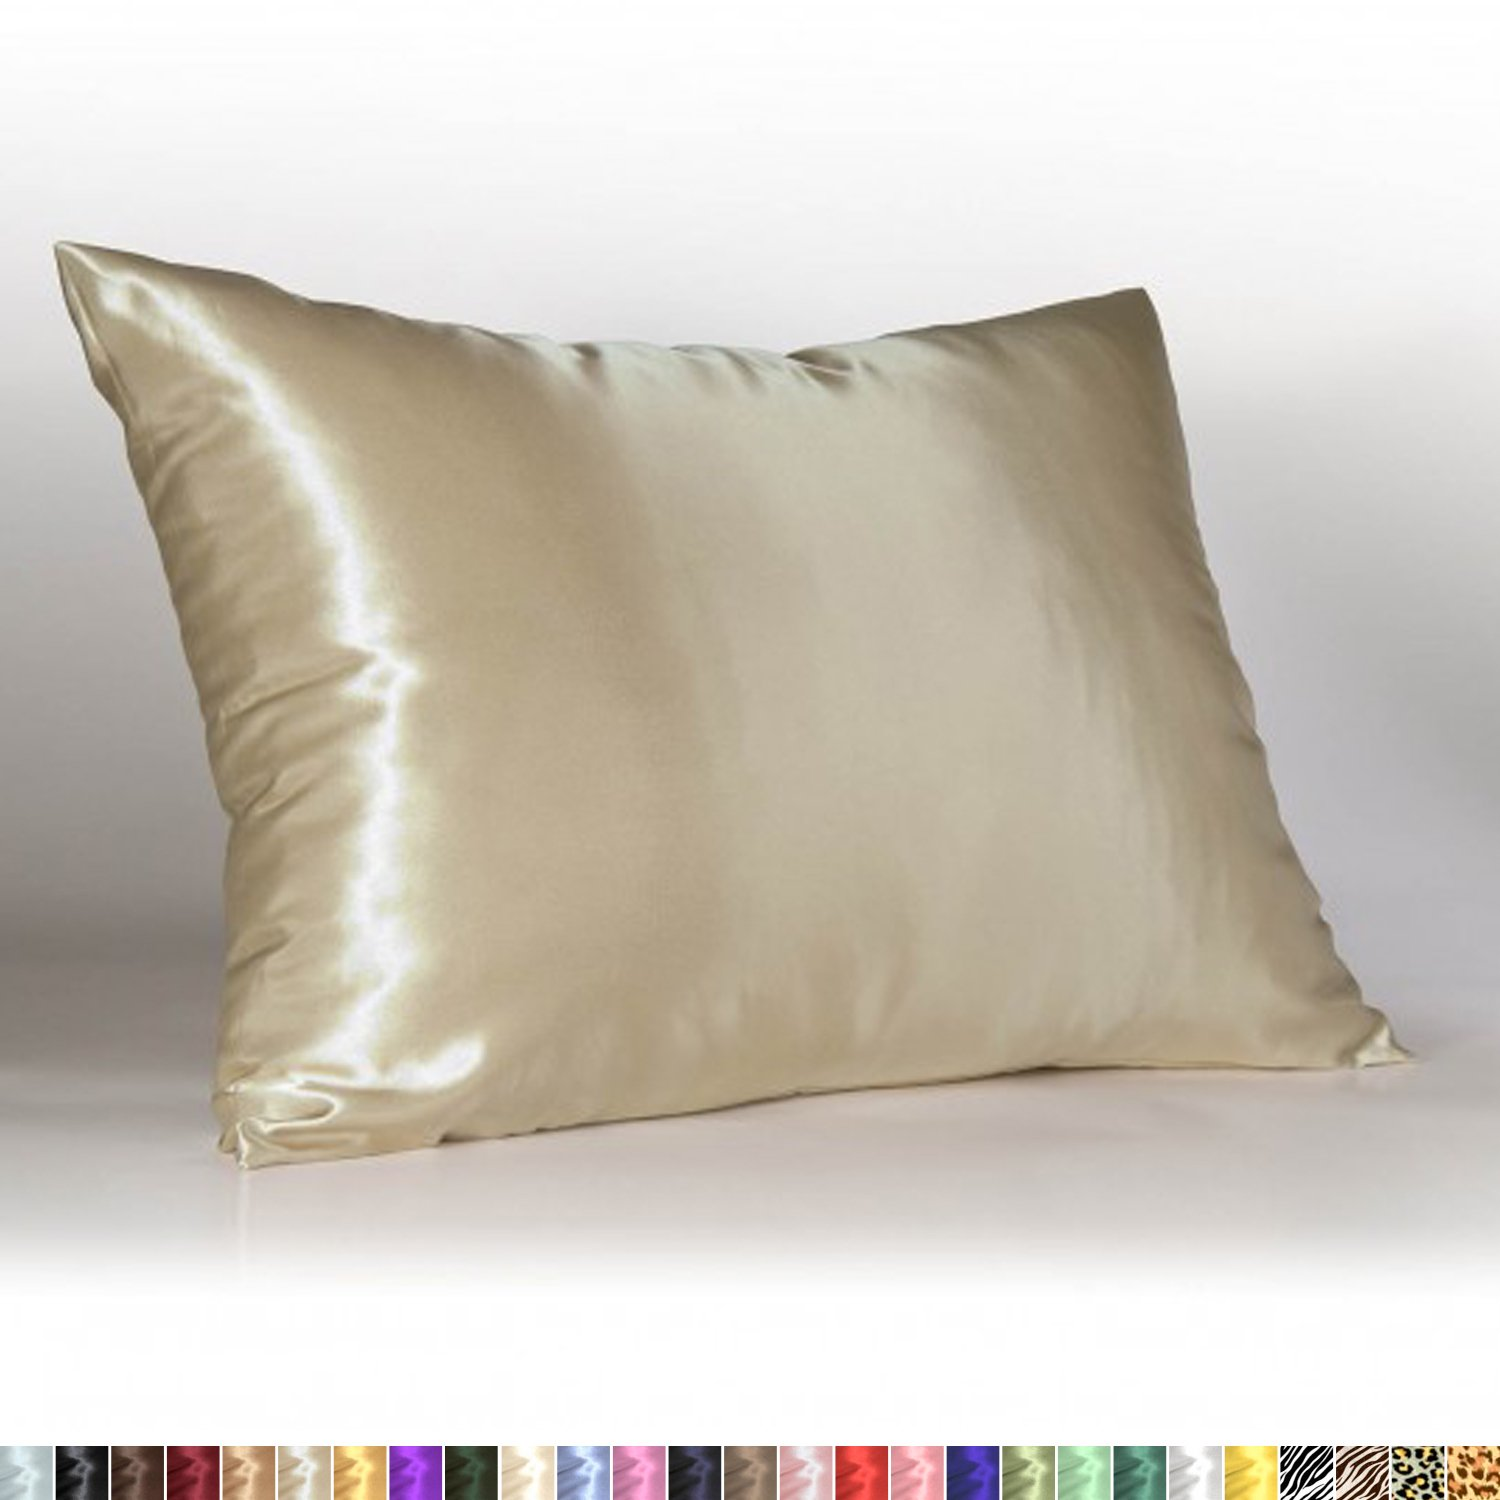 Sweet Dreams - Blissford Luxury Satin Pillowcase with Zipper, Standard Size, Champagne (Silky Satin Pillow Case for Hair) By Shop Bedding (1-Pack)